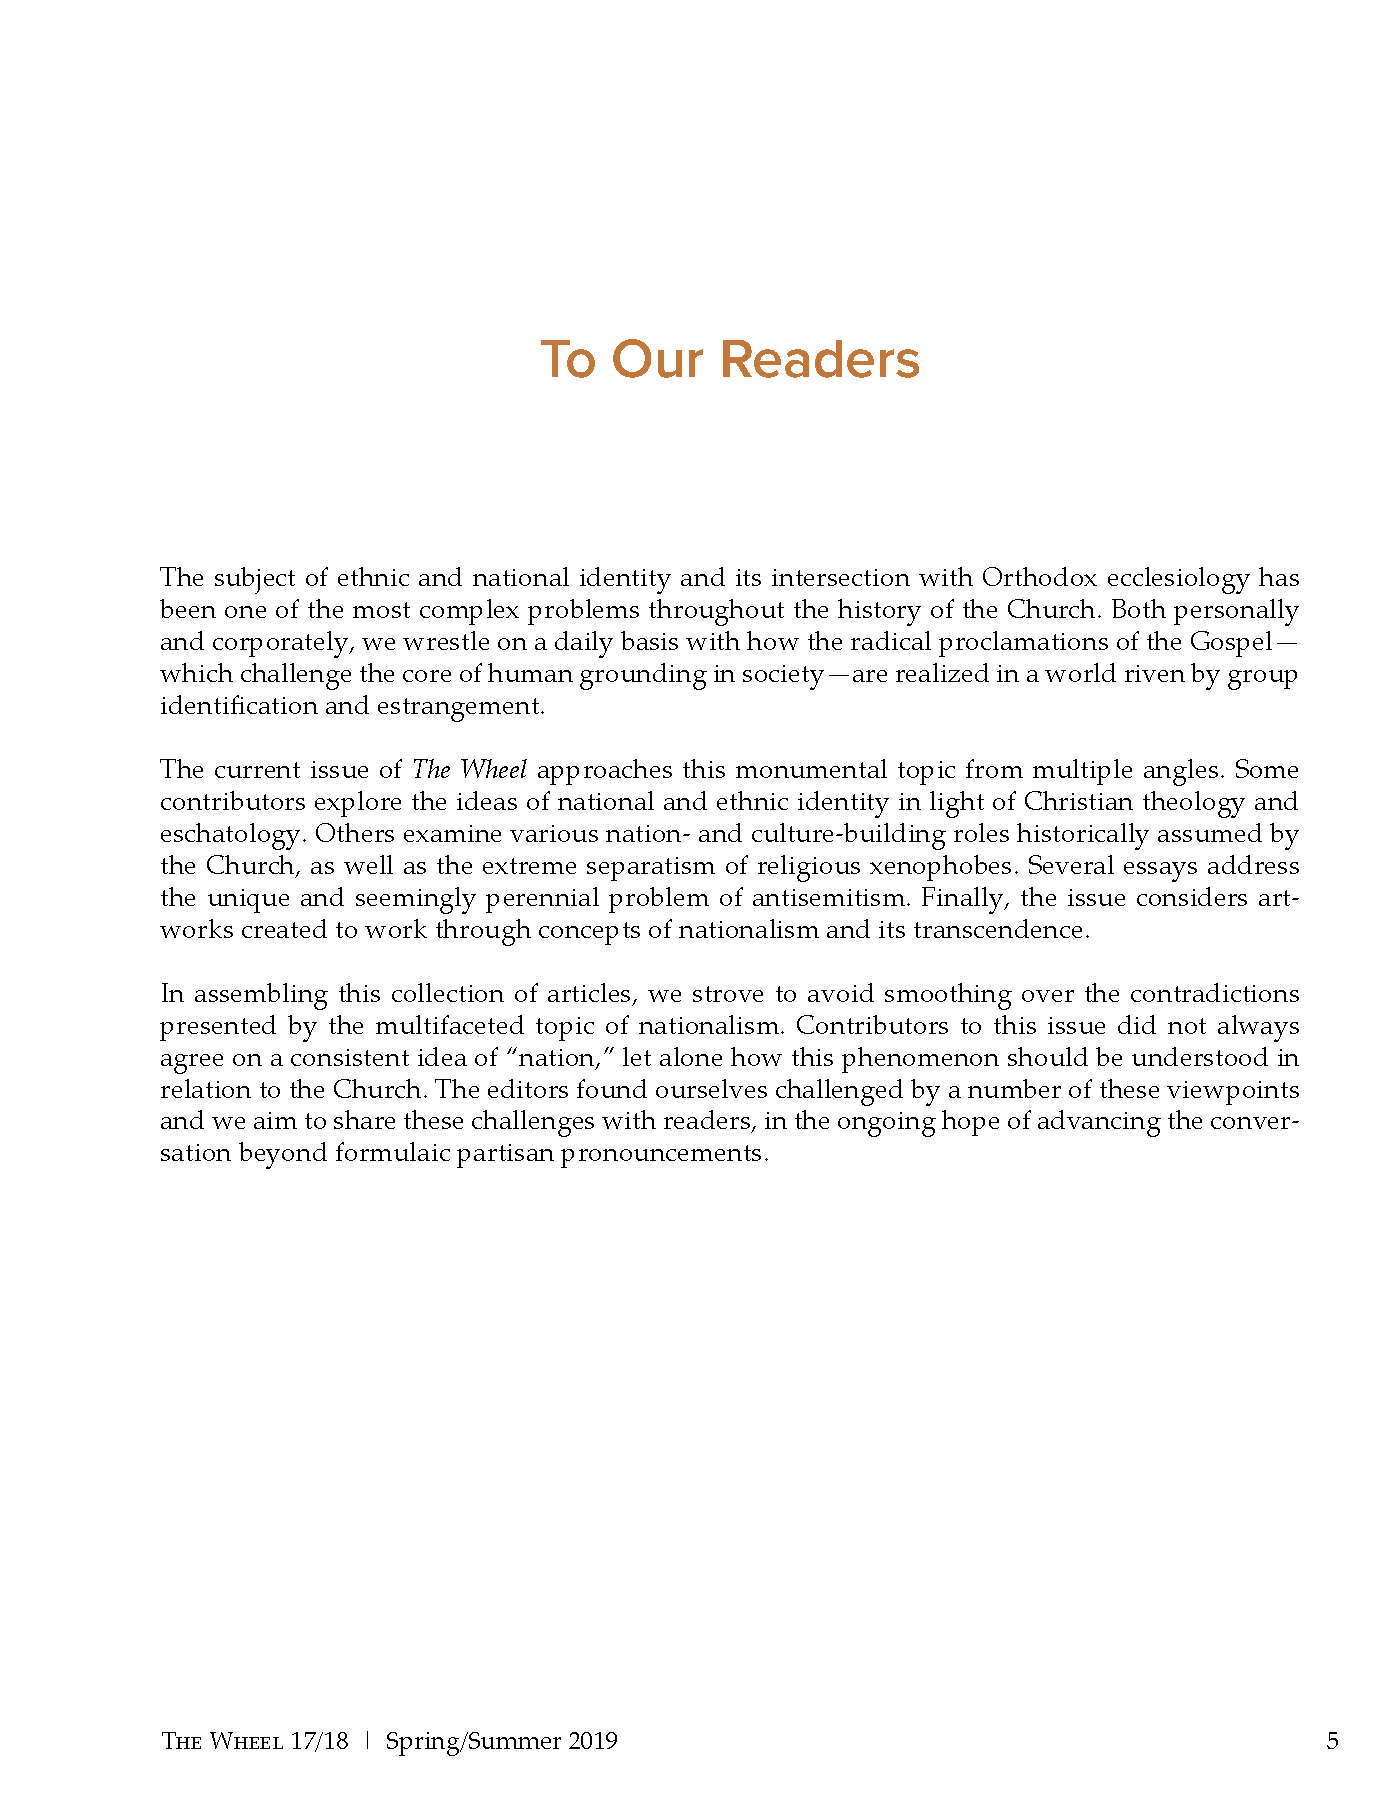 To Our Readers.png